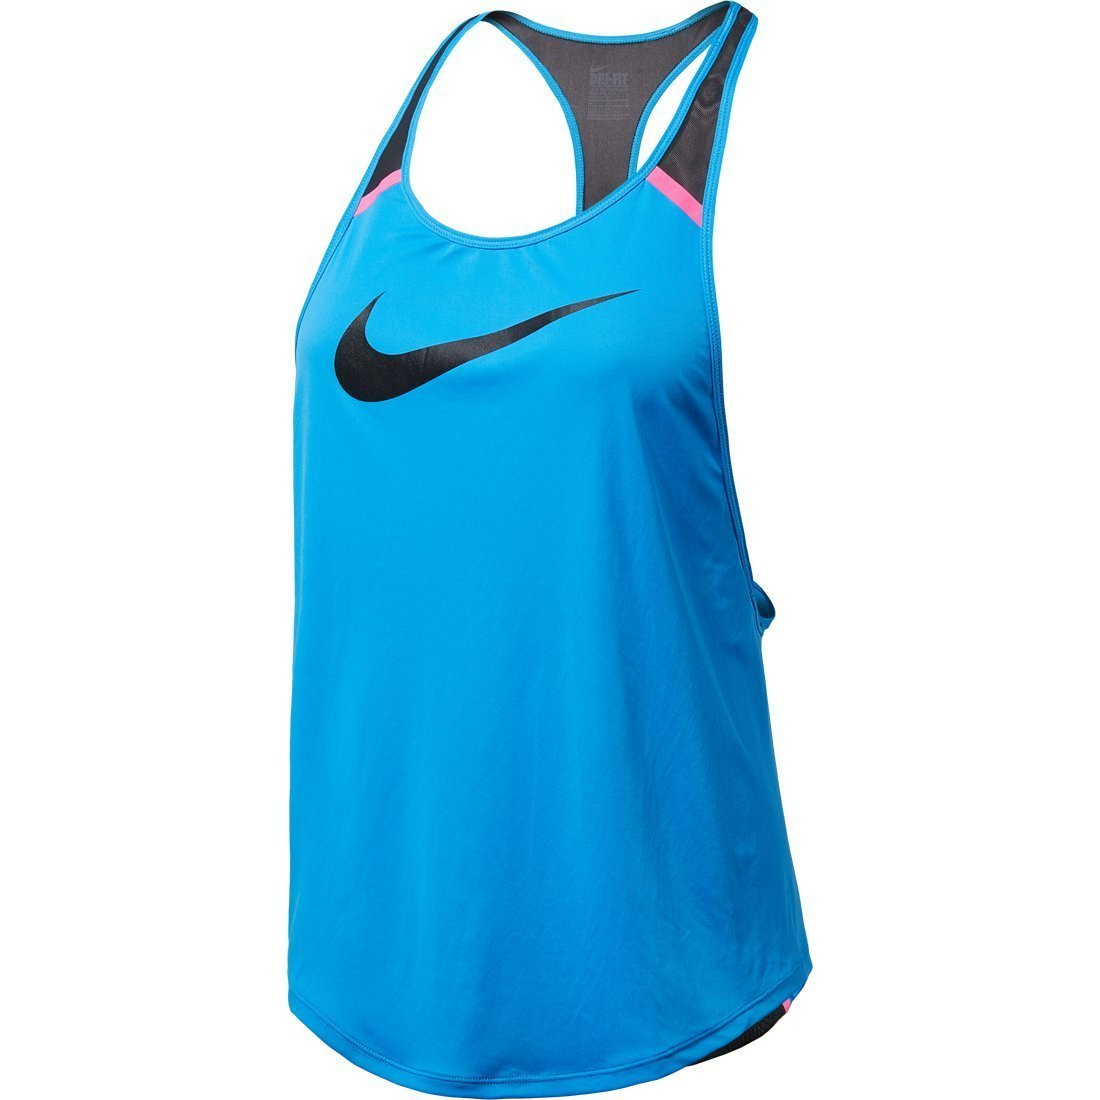 Activewear Tops Nike Tank Top Black With White Trim Xl Drip-Dry